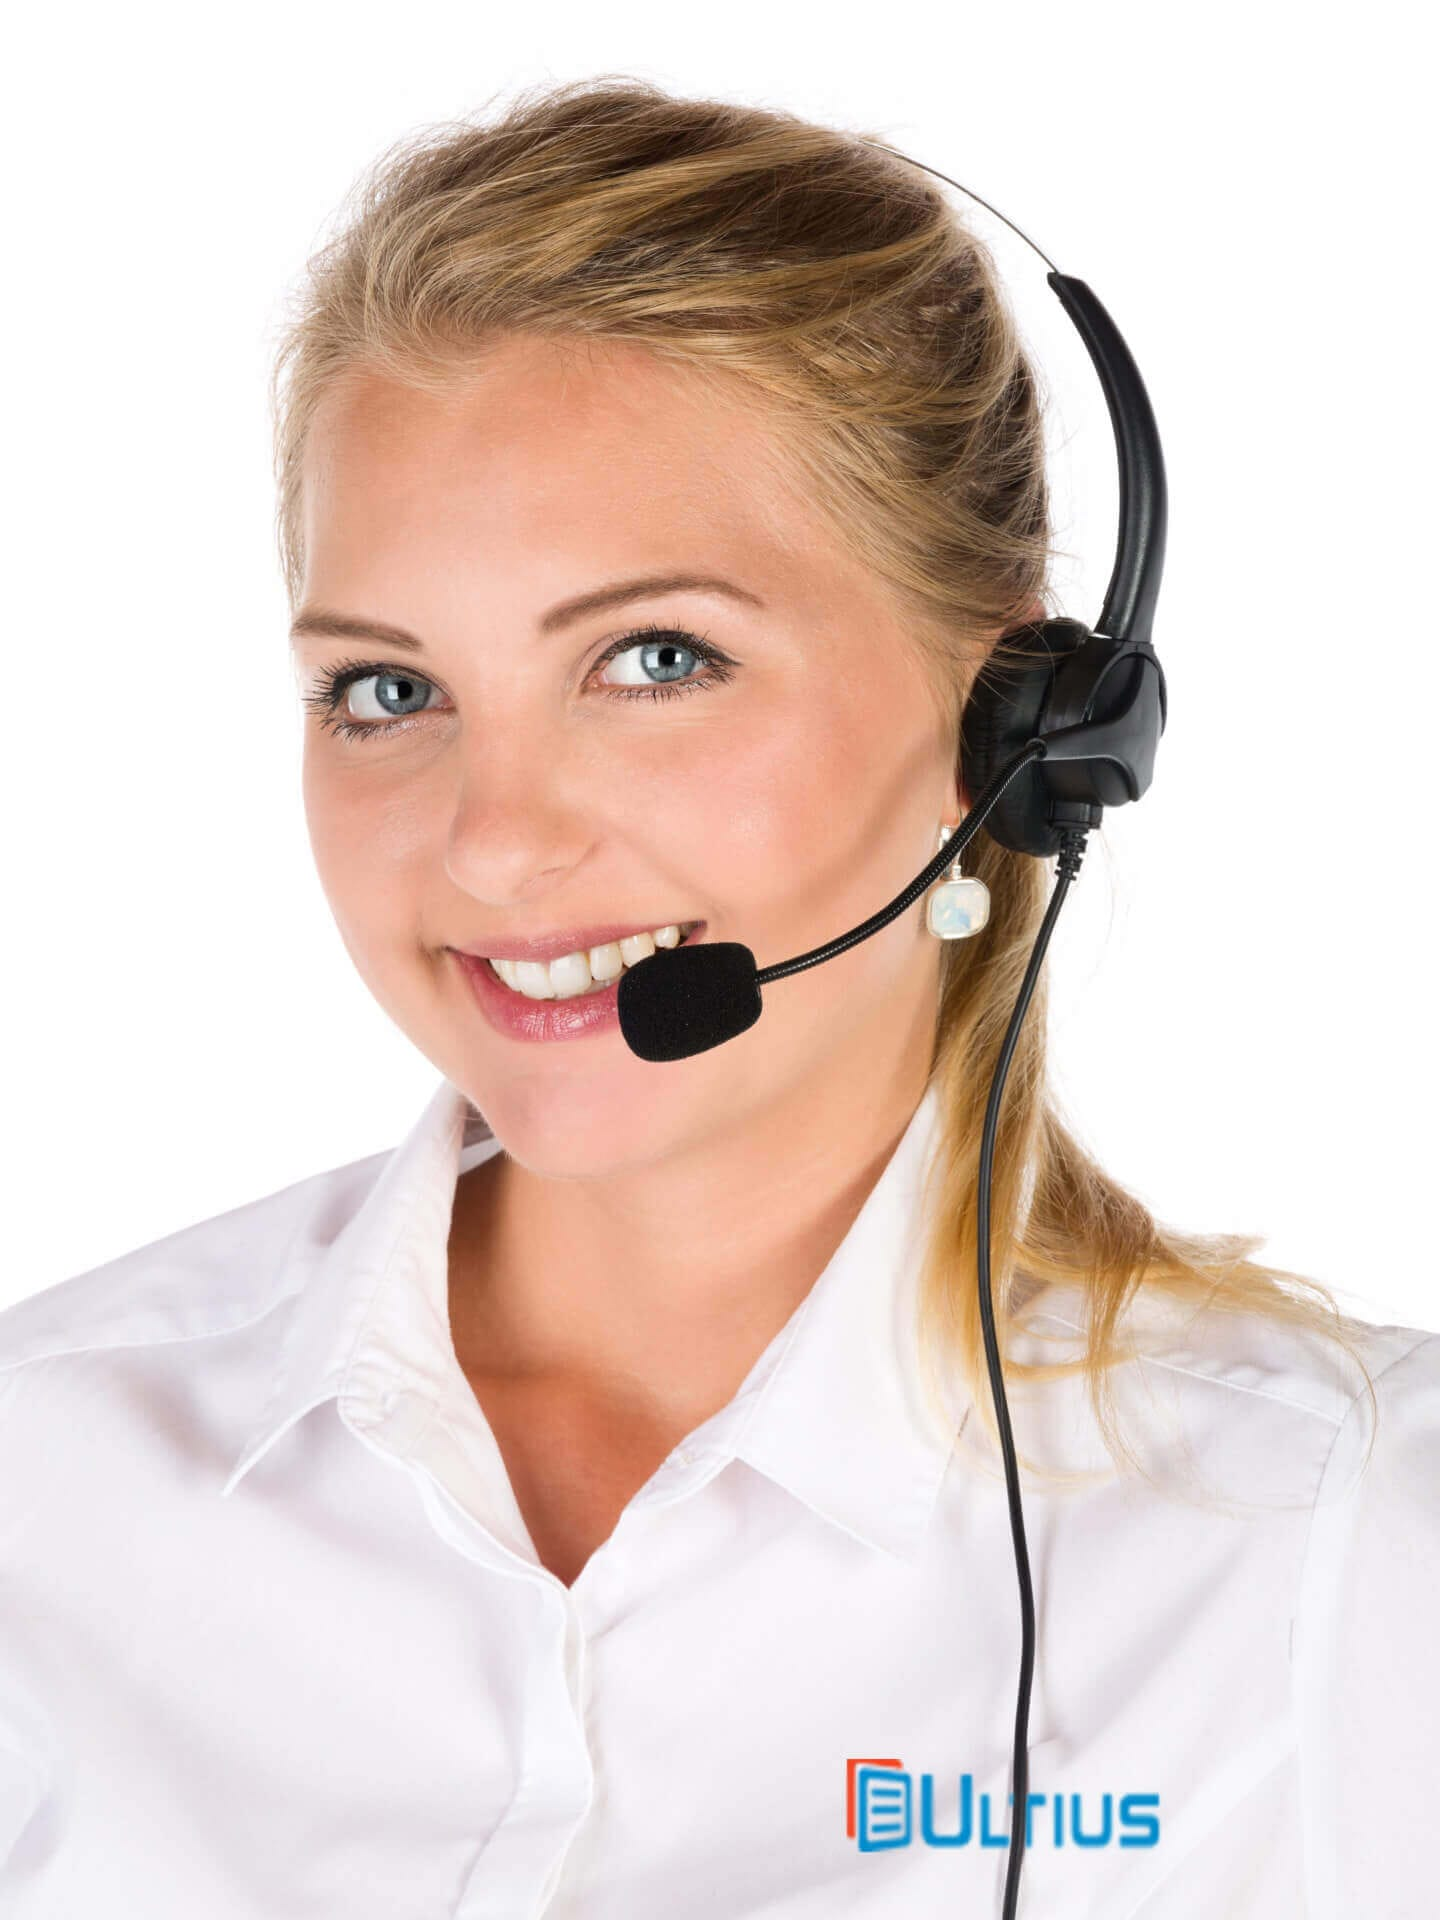 Ultius customer support representative with a headset